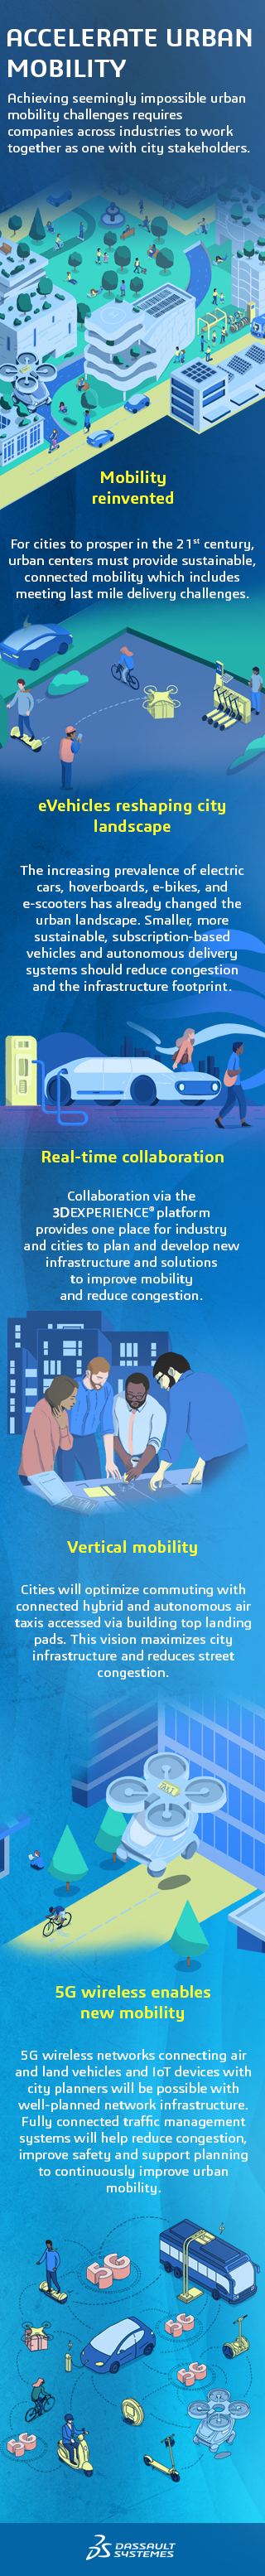 The Story of Urban Mobility > Infographic Mobile Image > Dassault Systèmes®